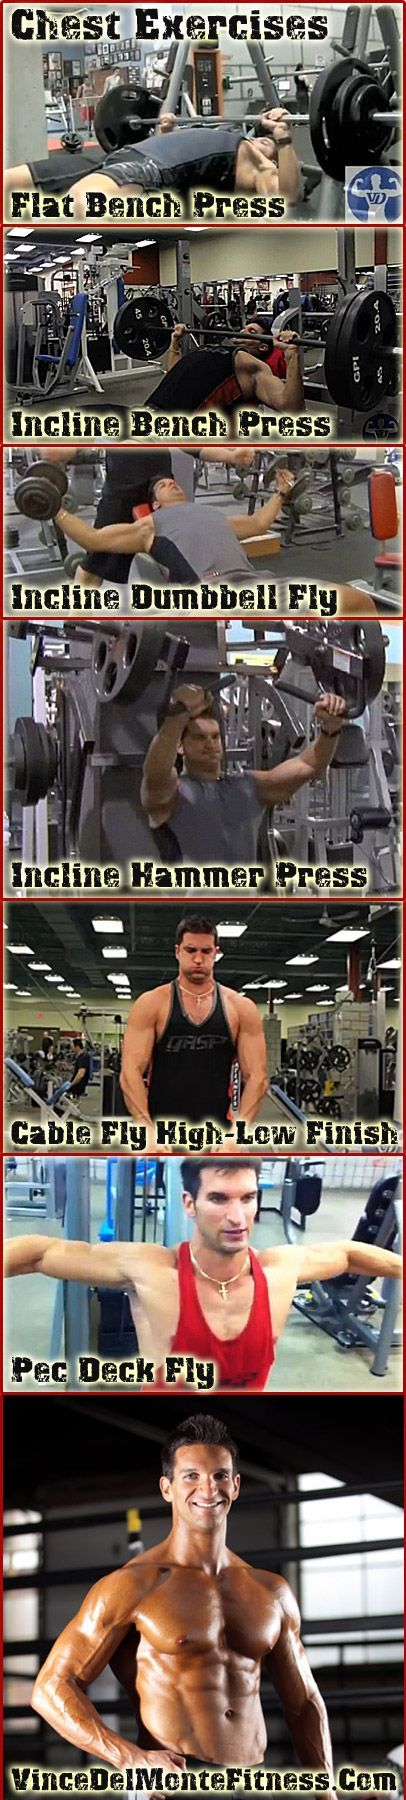 126 best images about Chest Exercises and Workouts on Pinterest ...